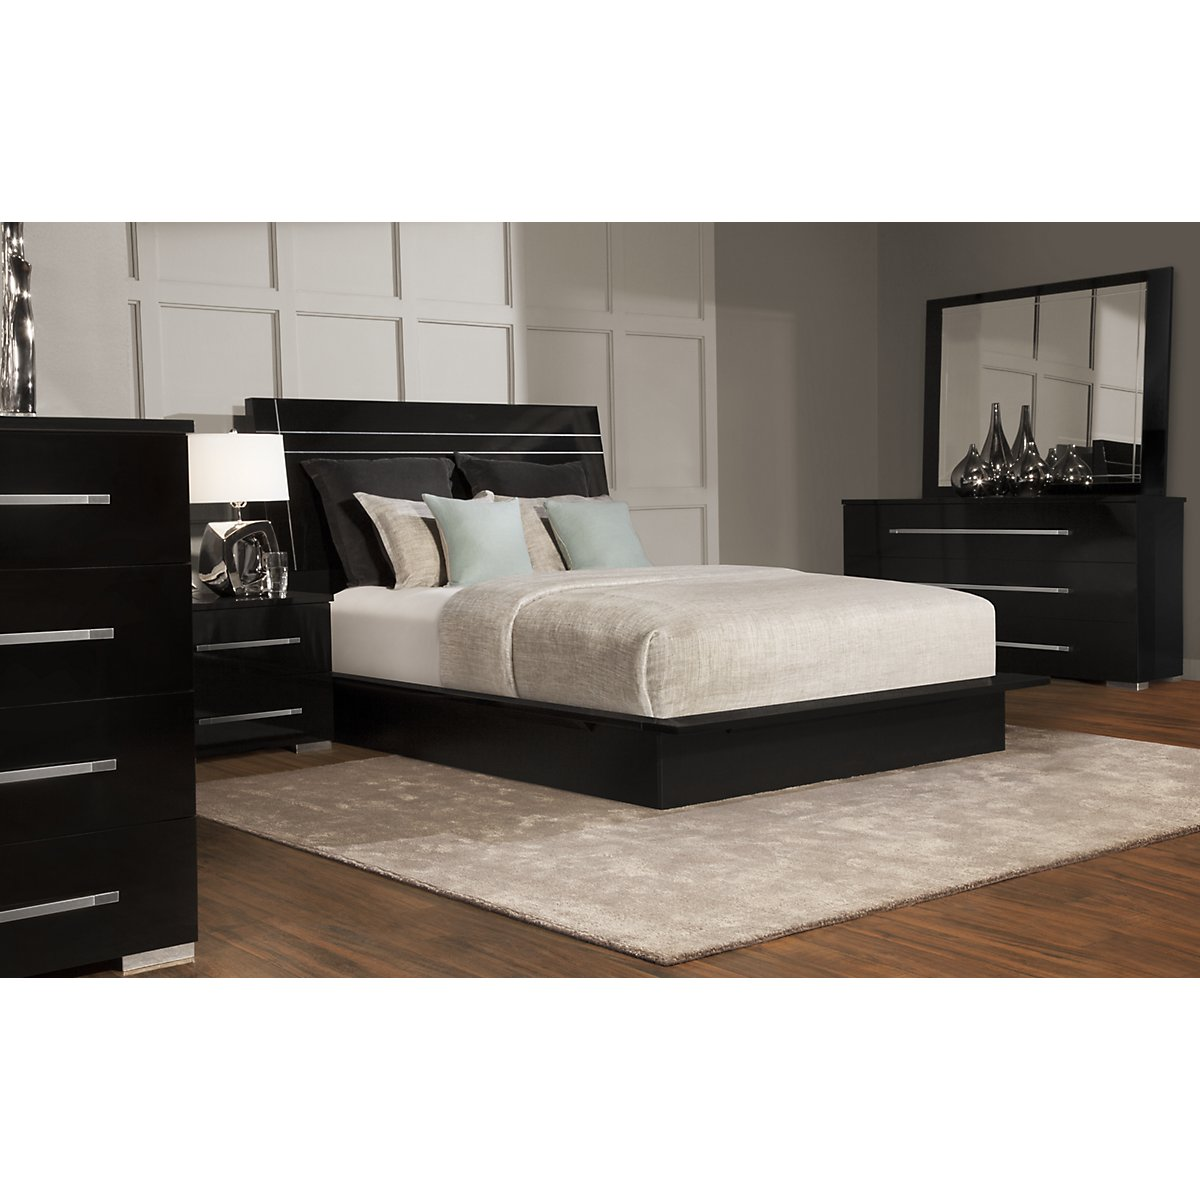 City Furniture Dimora3 Black Wood Platform Bed